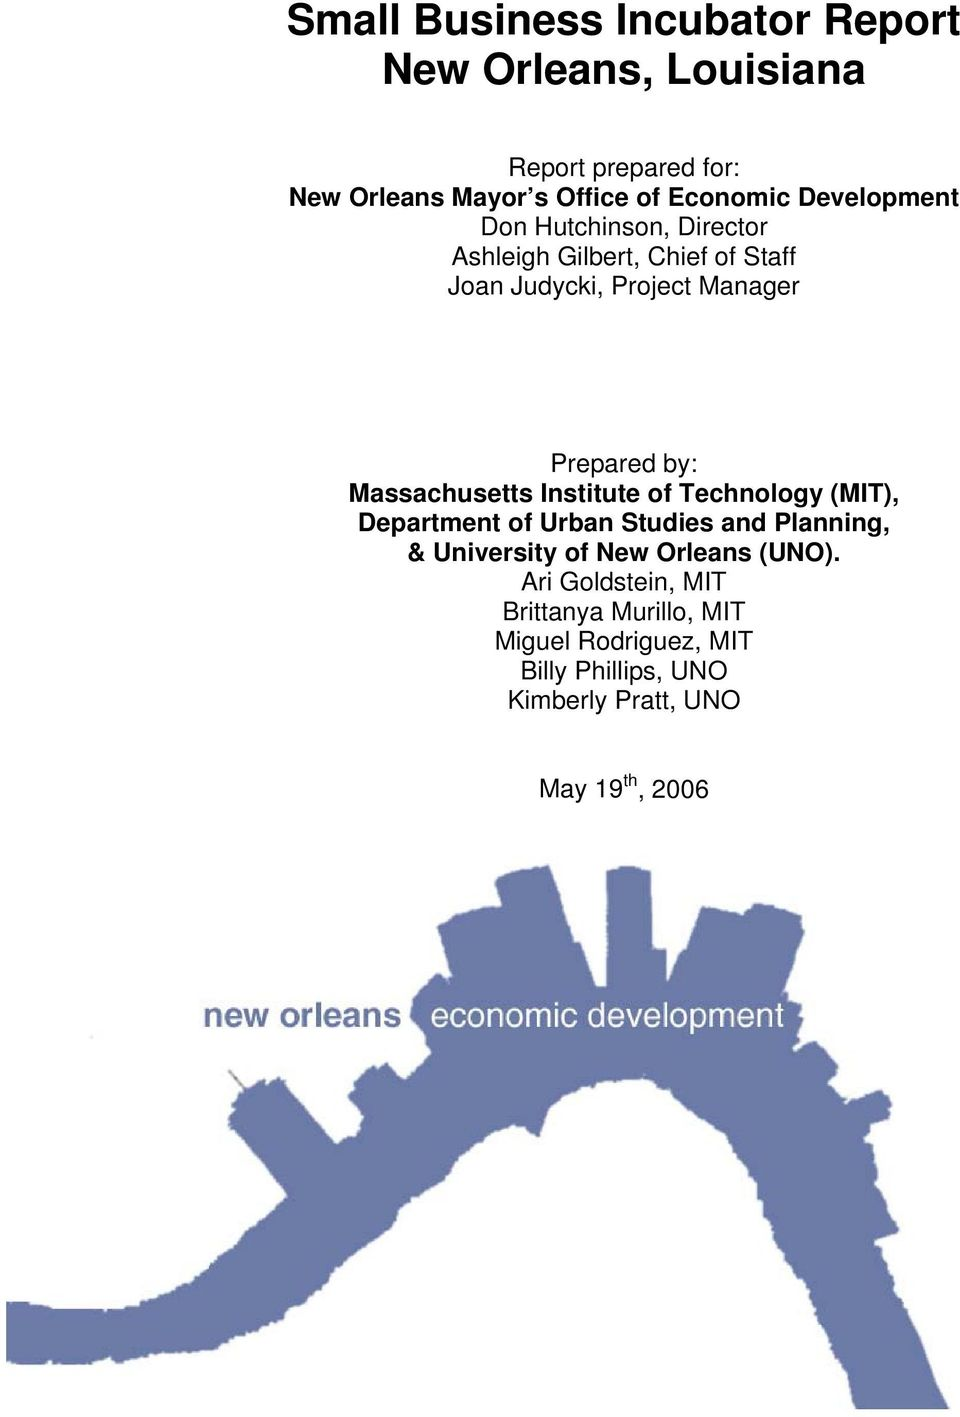 Massachusetts Institute of Technology (MIT), Department of Urban Studies and Planning, & University of New Orleans